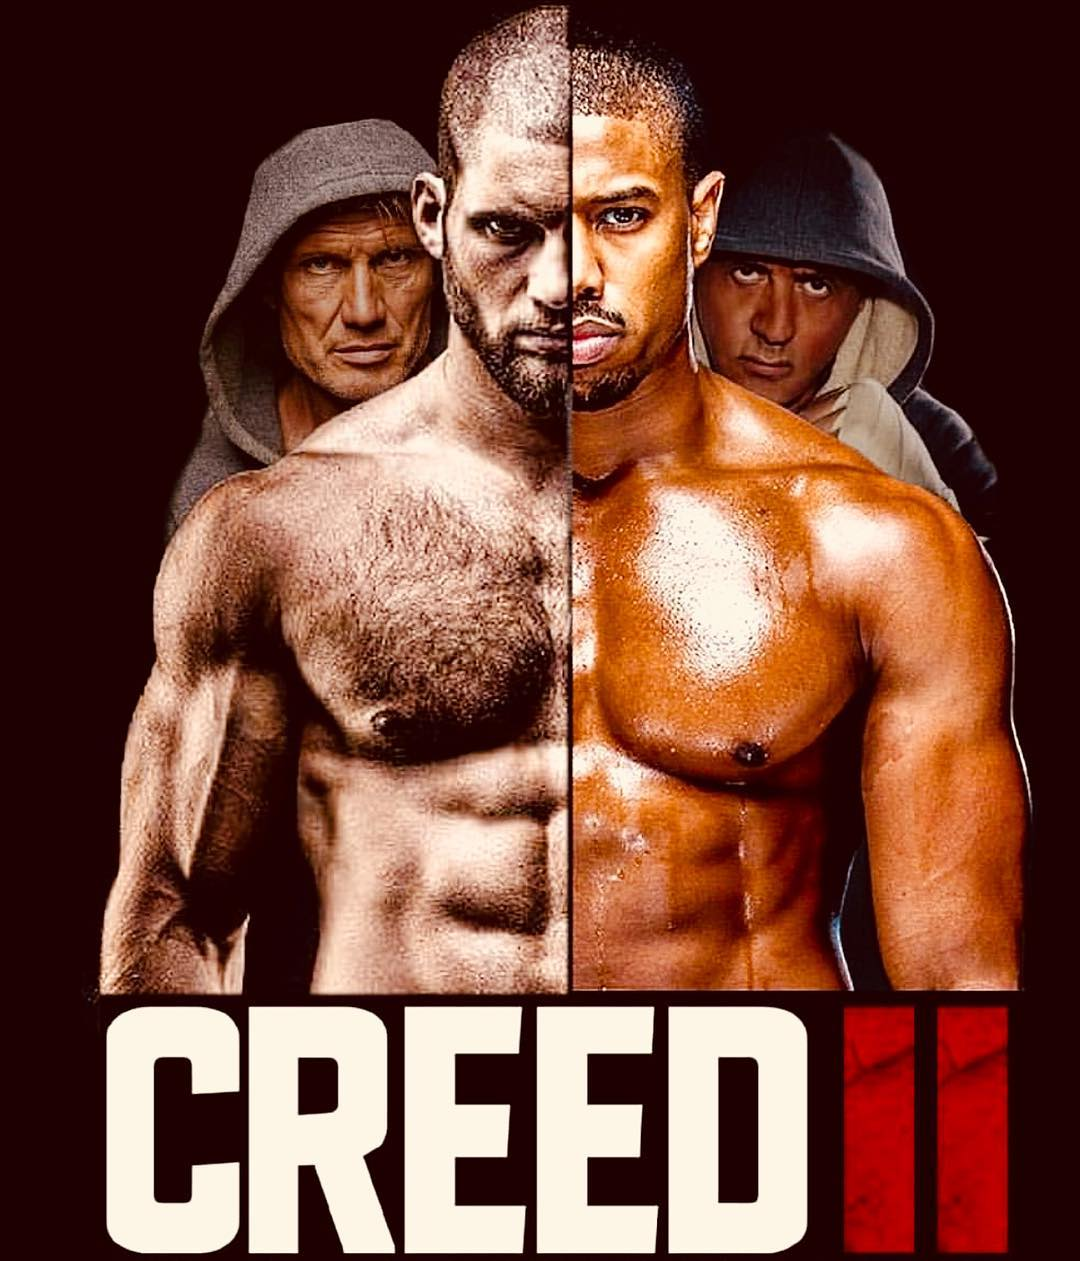 Creed 2 Movie Poster Shared By Sylvester Stallone Fan Made Teaser Trailer